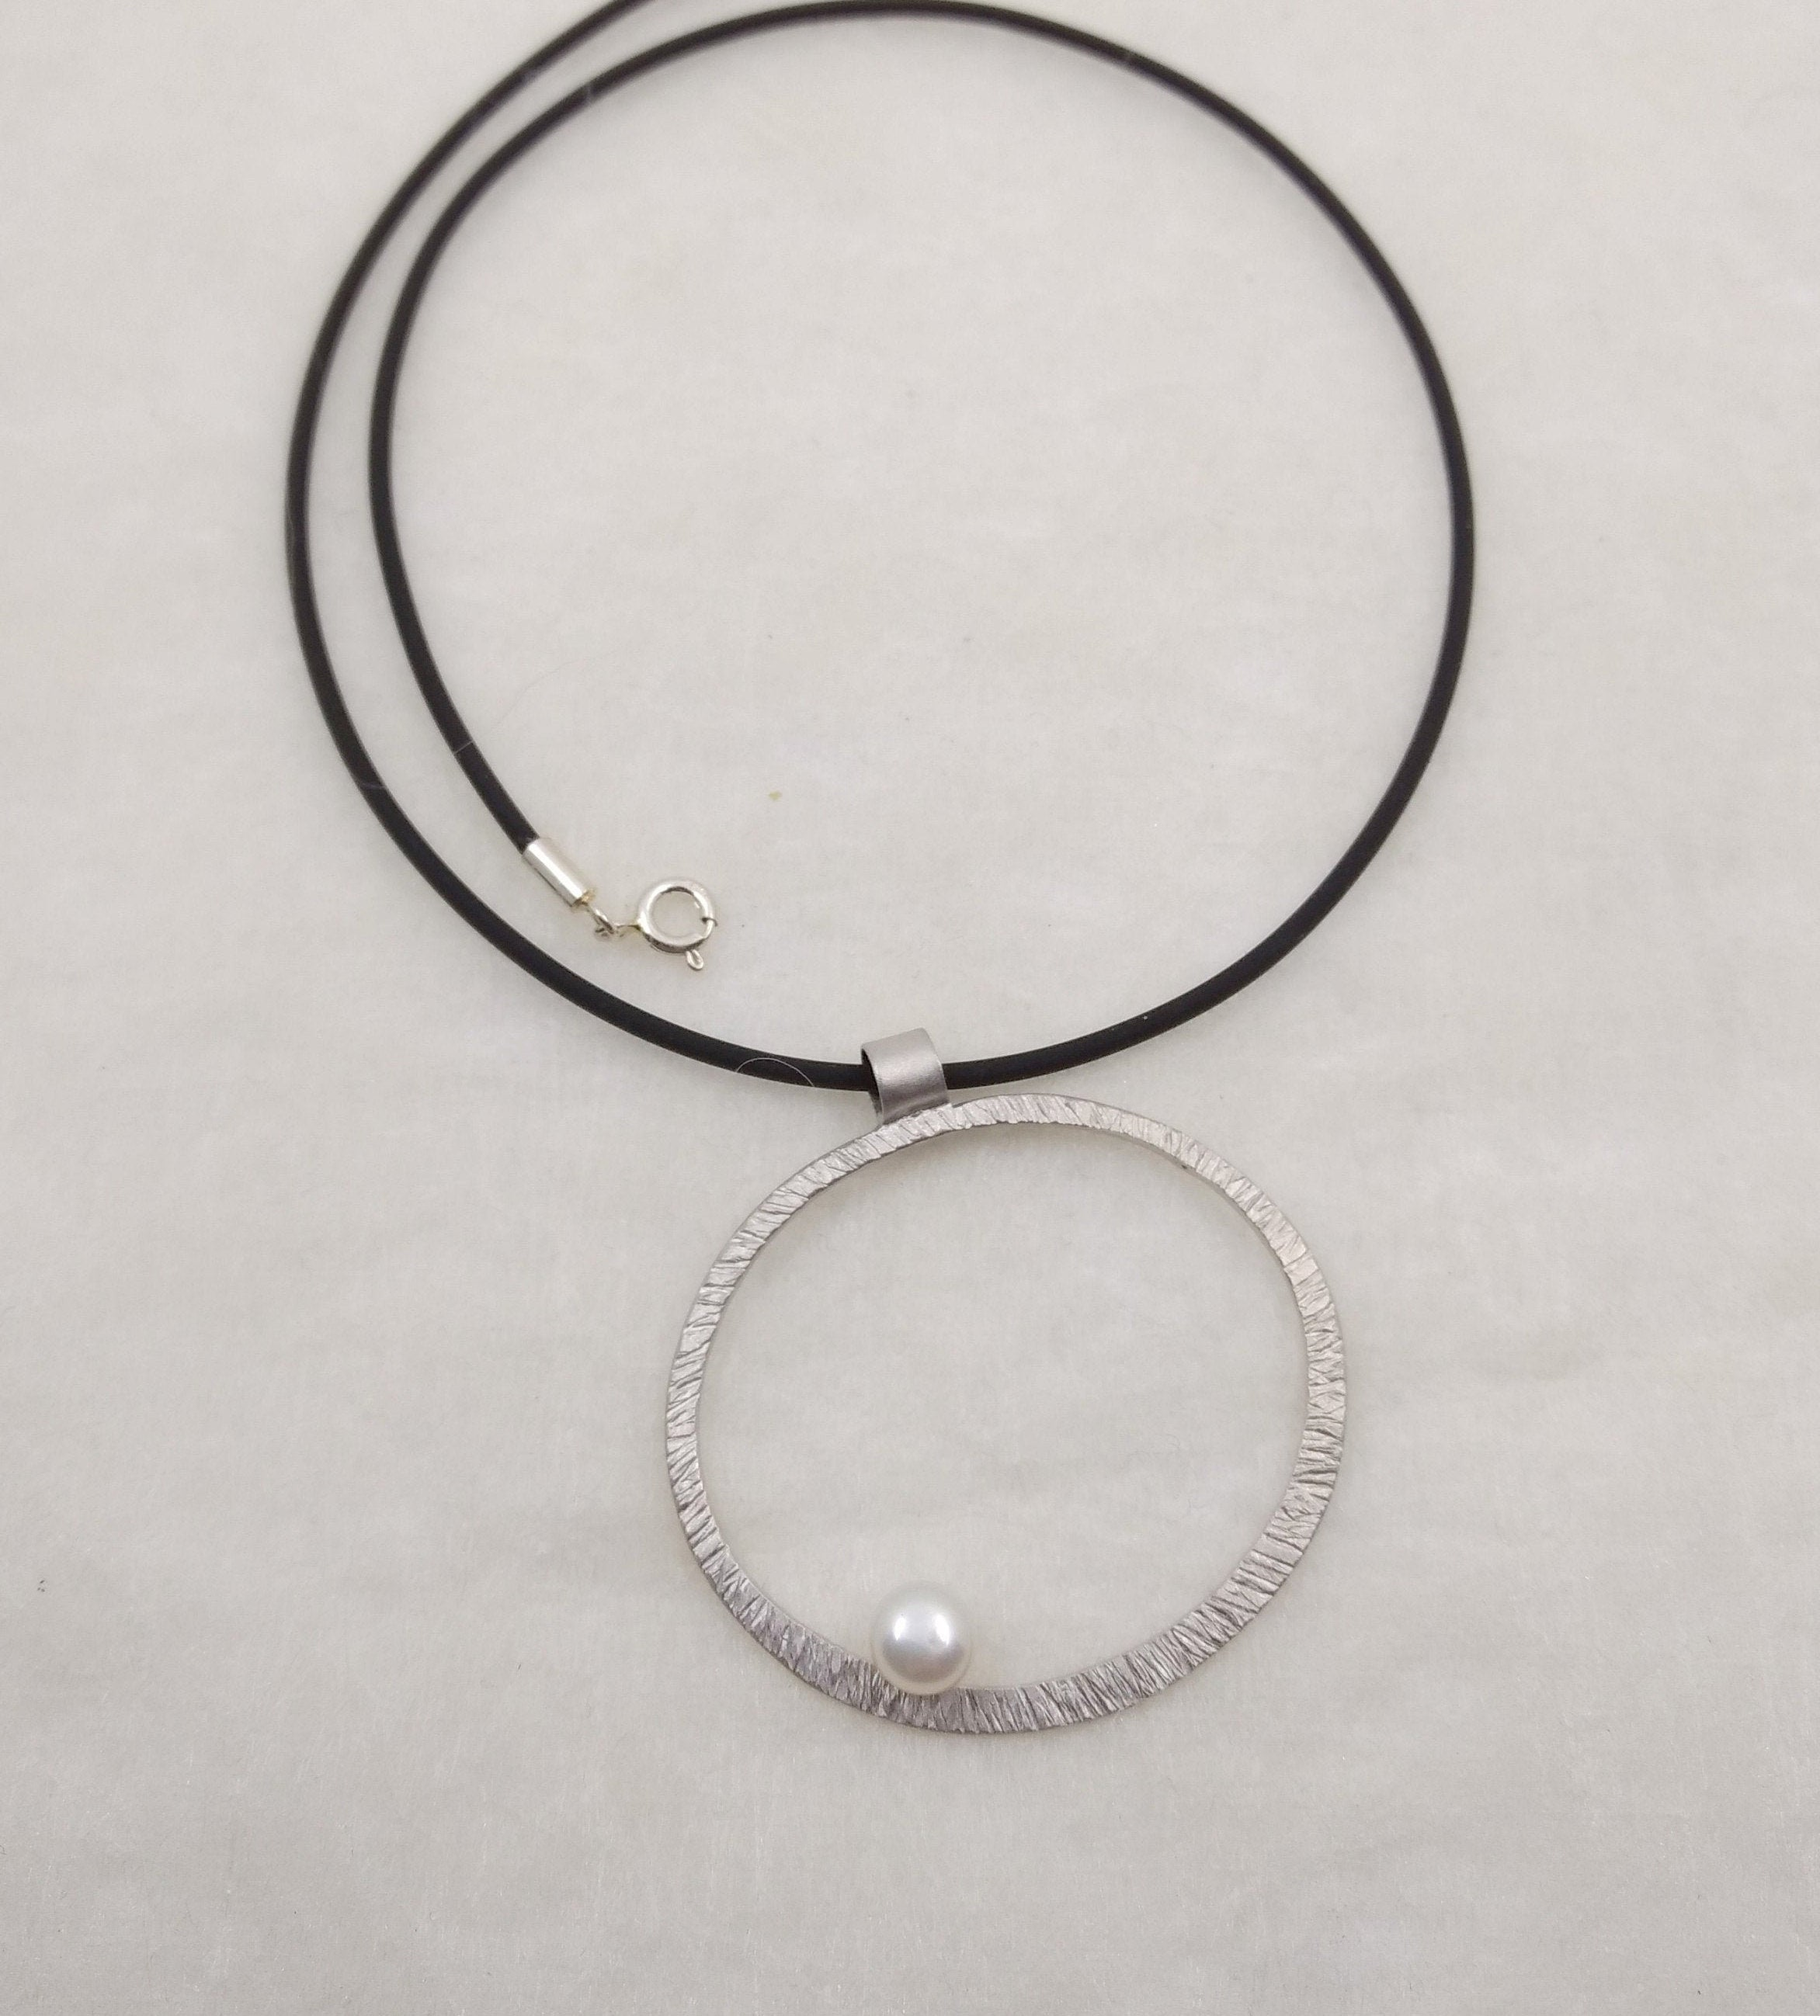 LaLune - medium Sterling Silver pendant with white pearl, available in 3 finishes